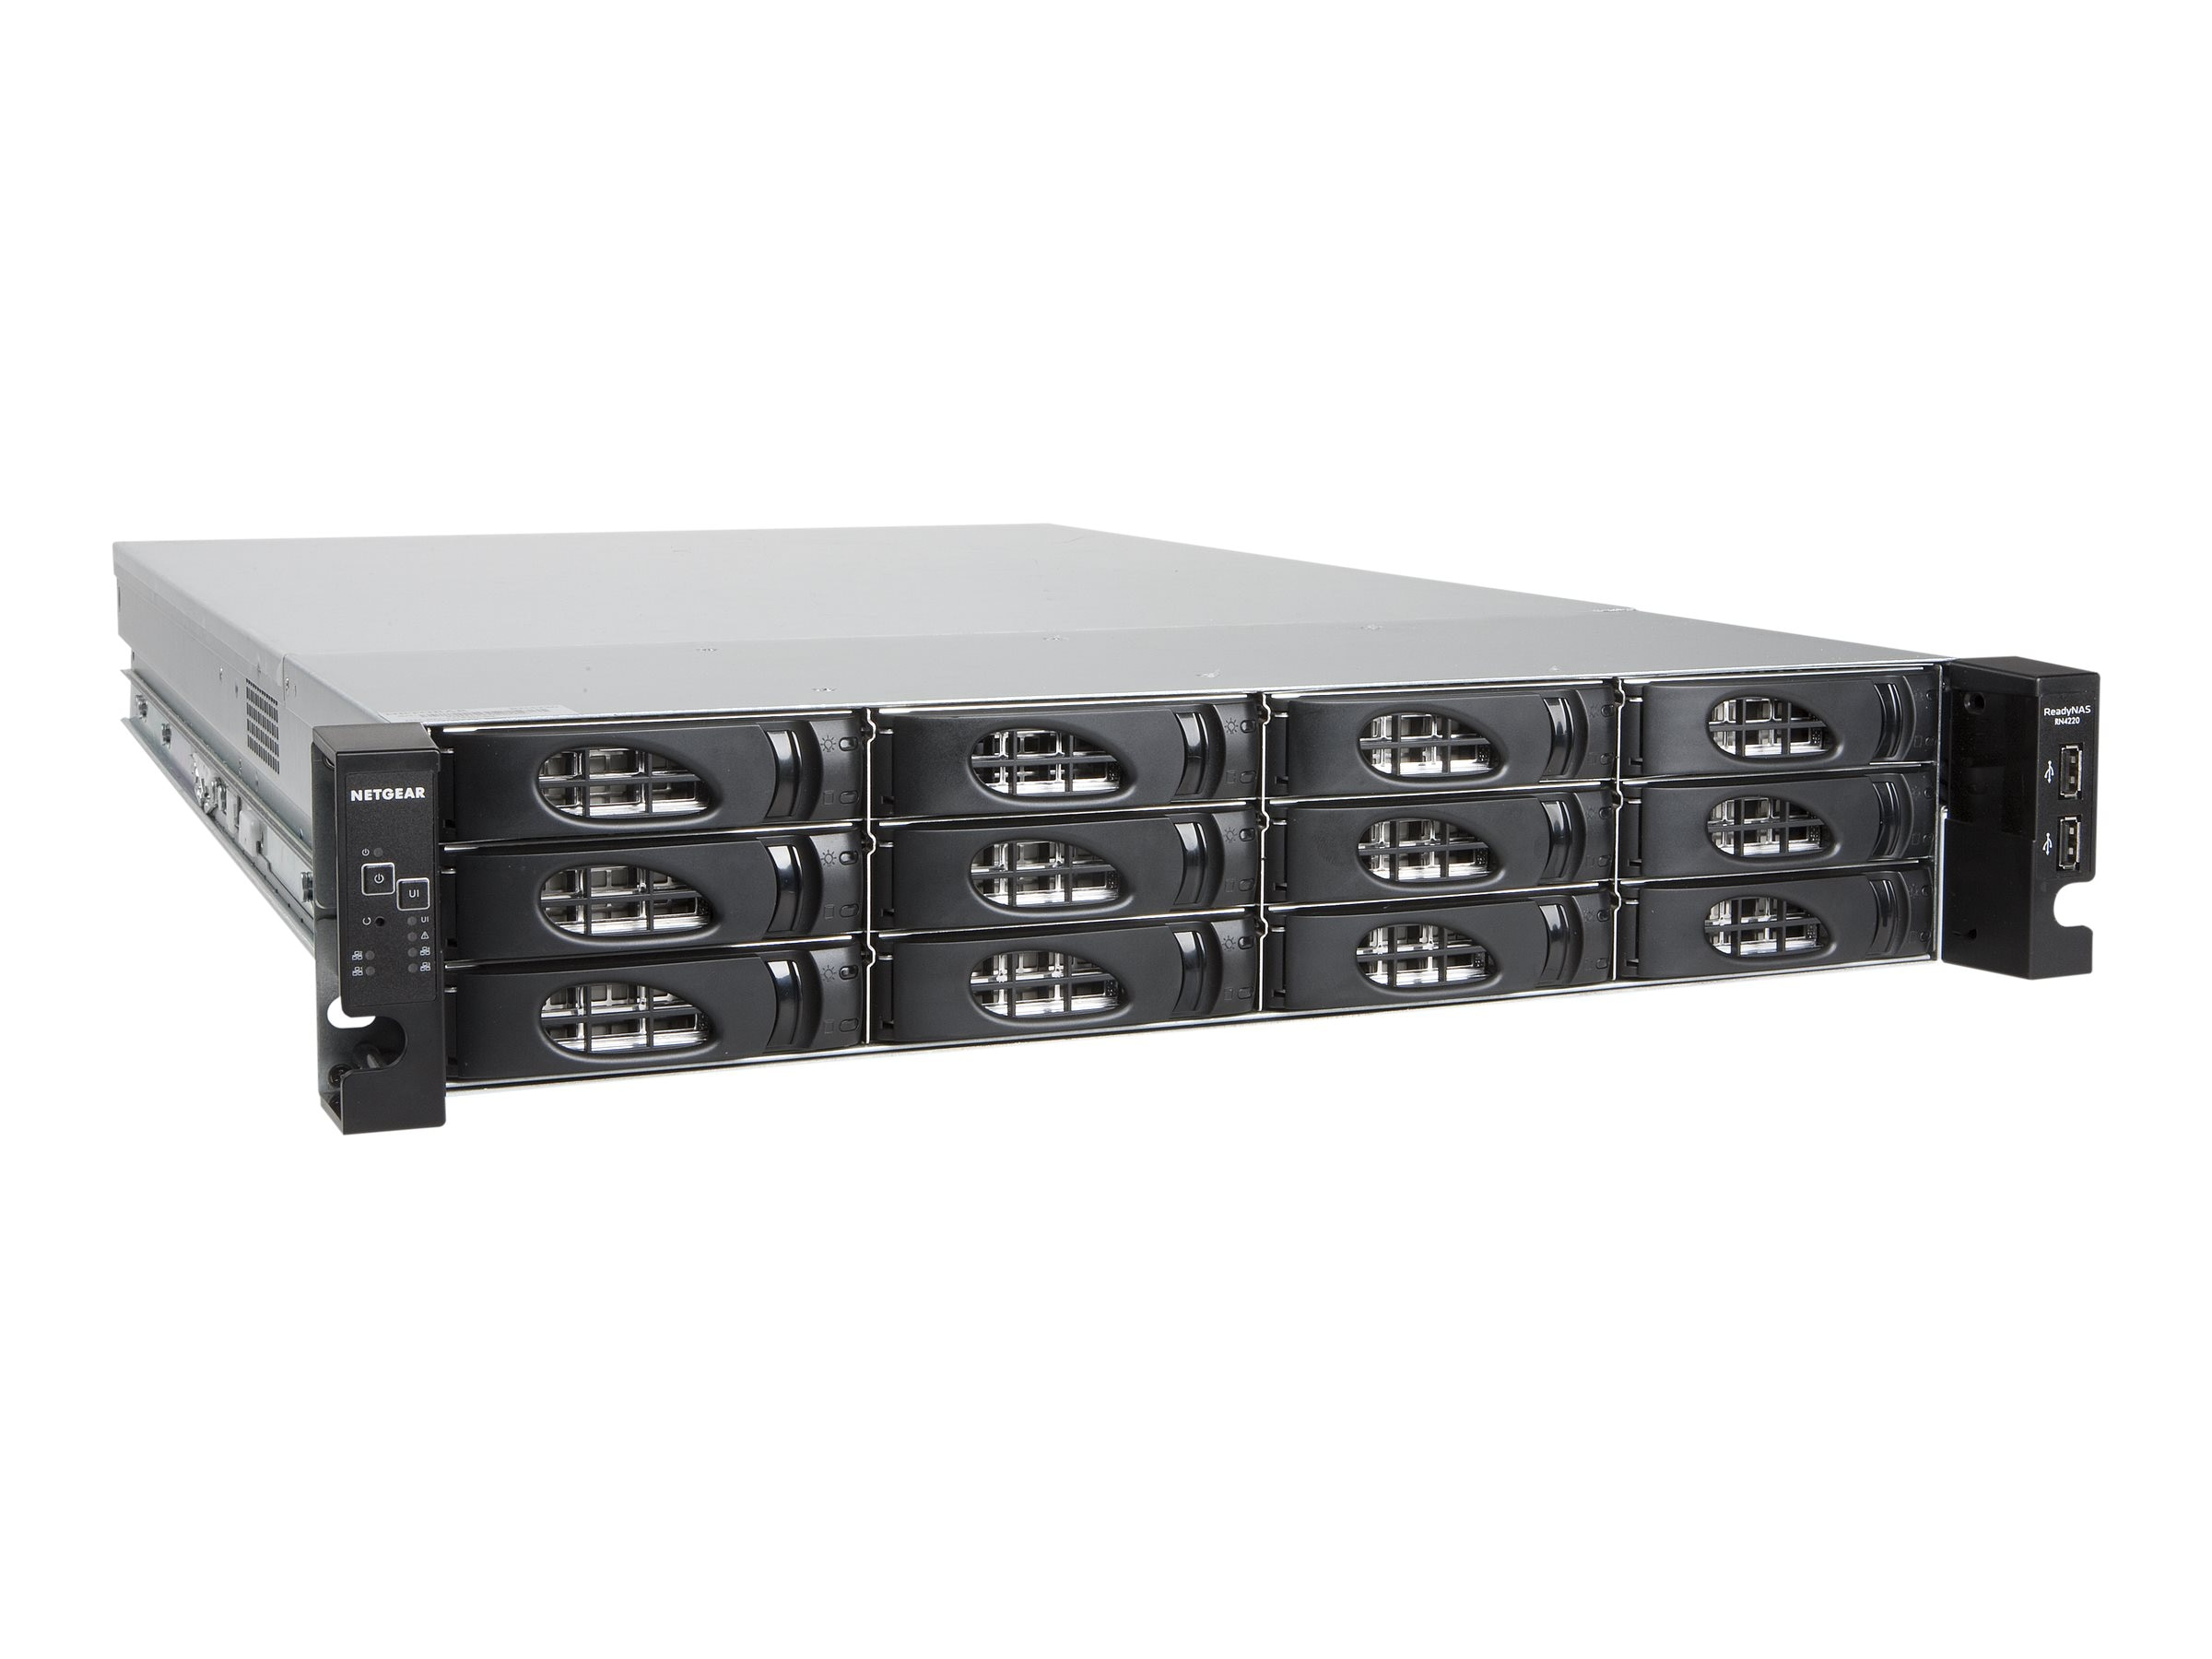 Netgear 4220X, 2U 10GBASE-T 12X4TB ENT, RN422X124-100NES, 16055743, Network Attached Storage